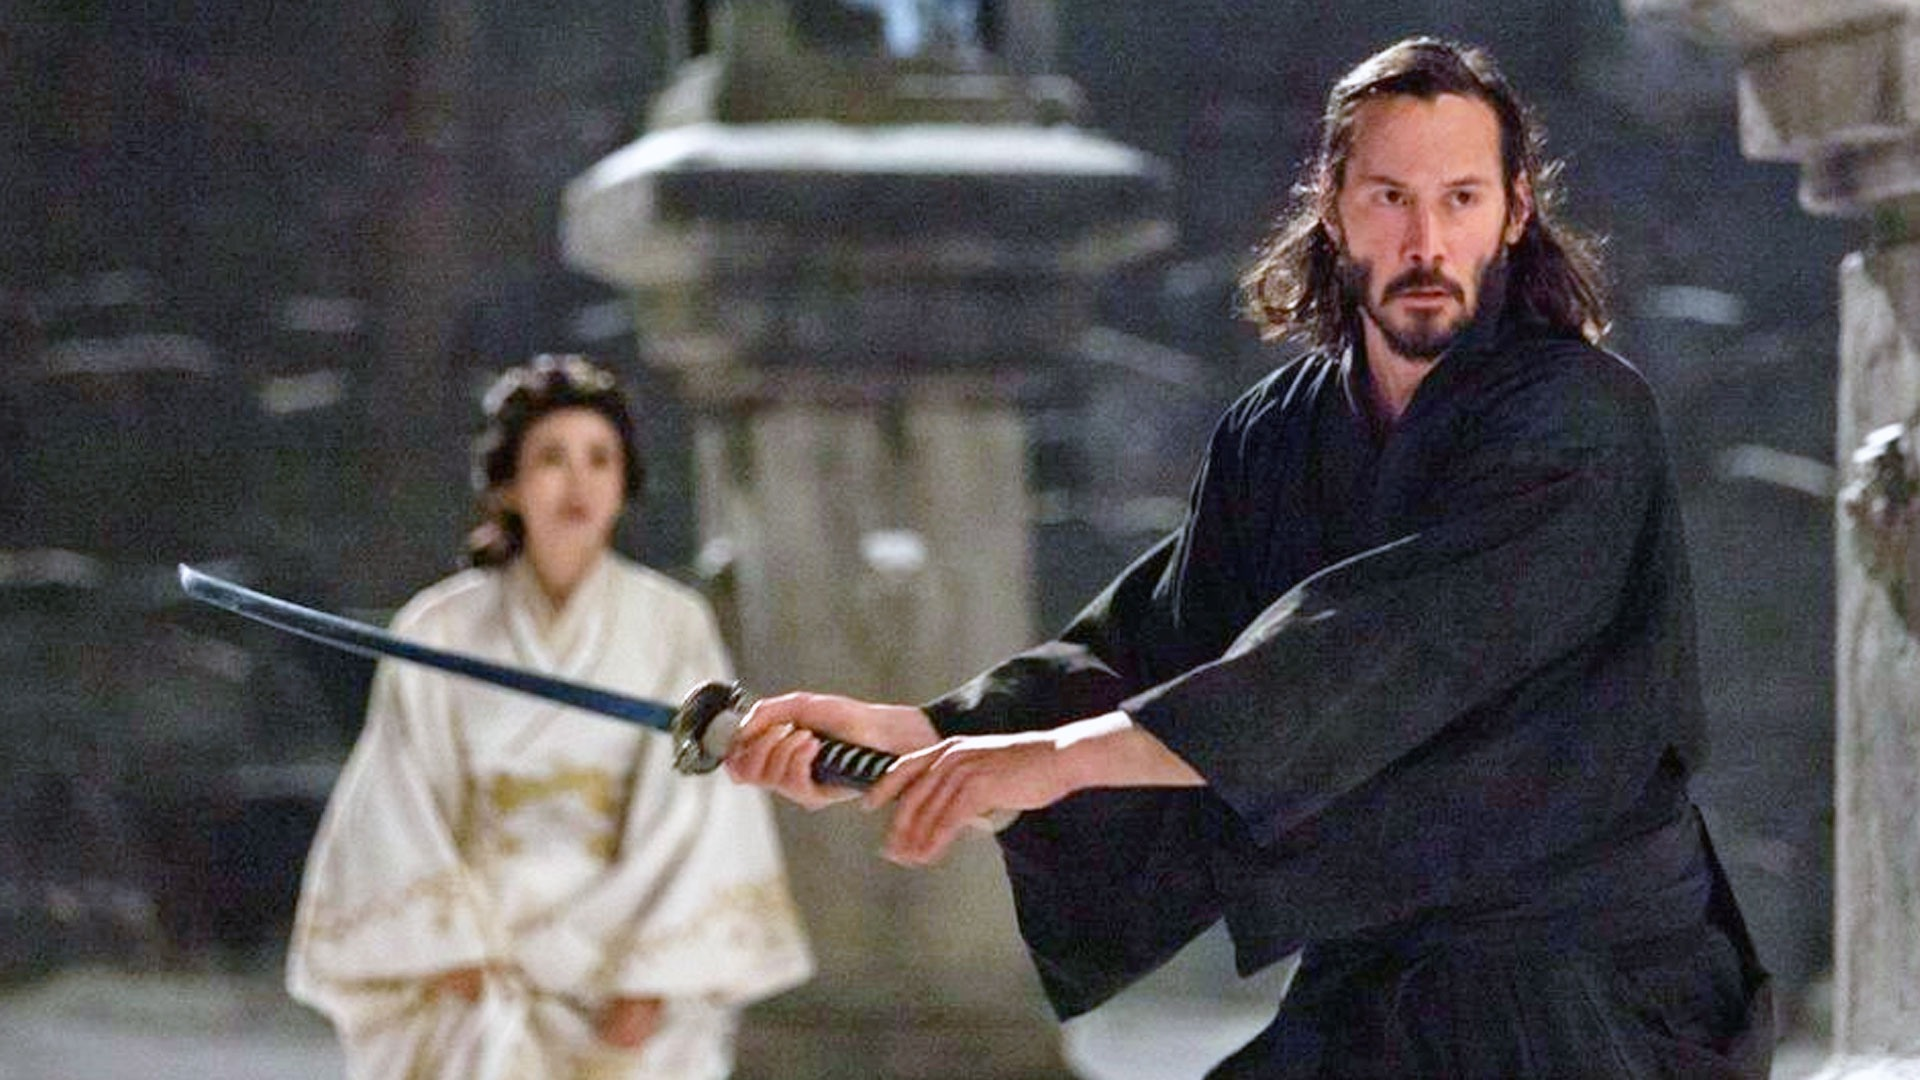 Keanu Reeves samurai in 47 Ronin (2013). With Ko Shibasaki in the background